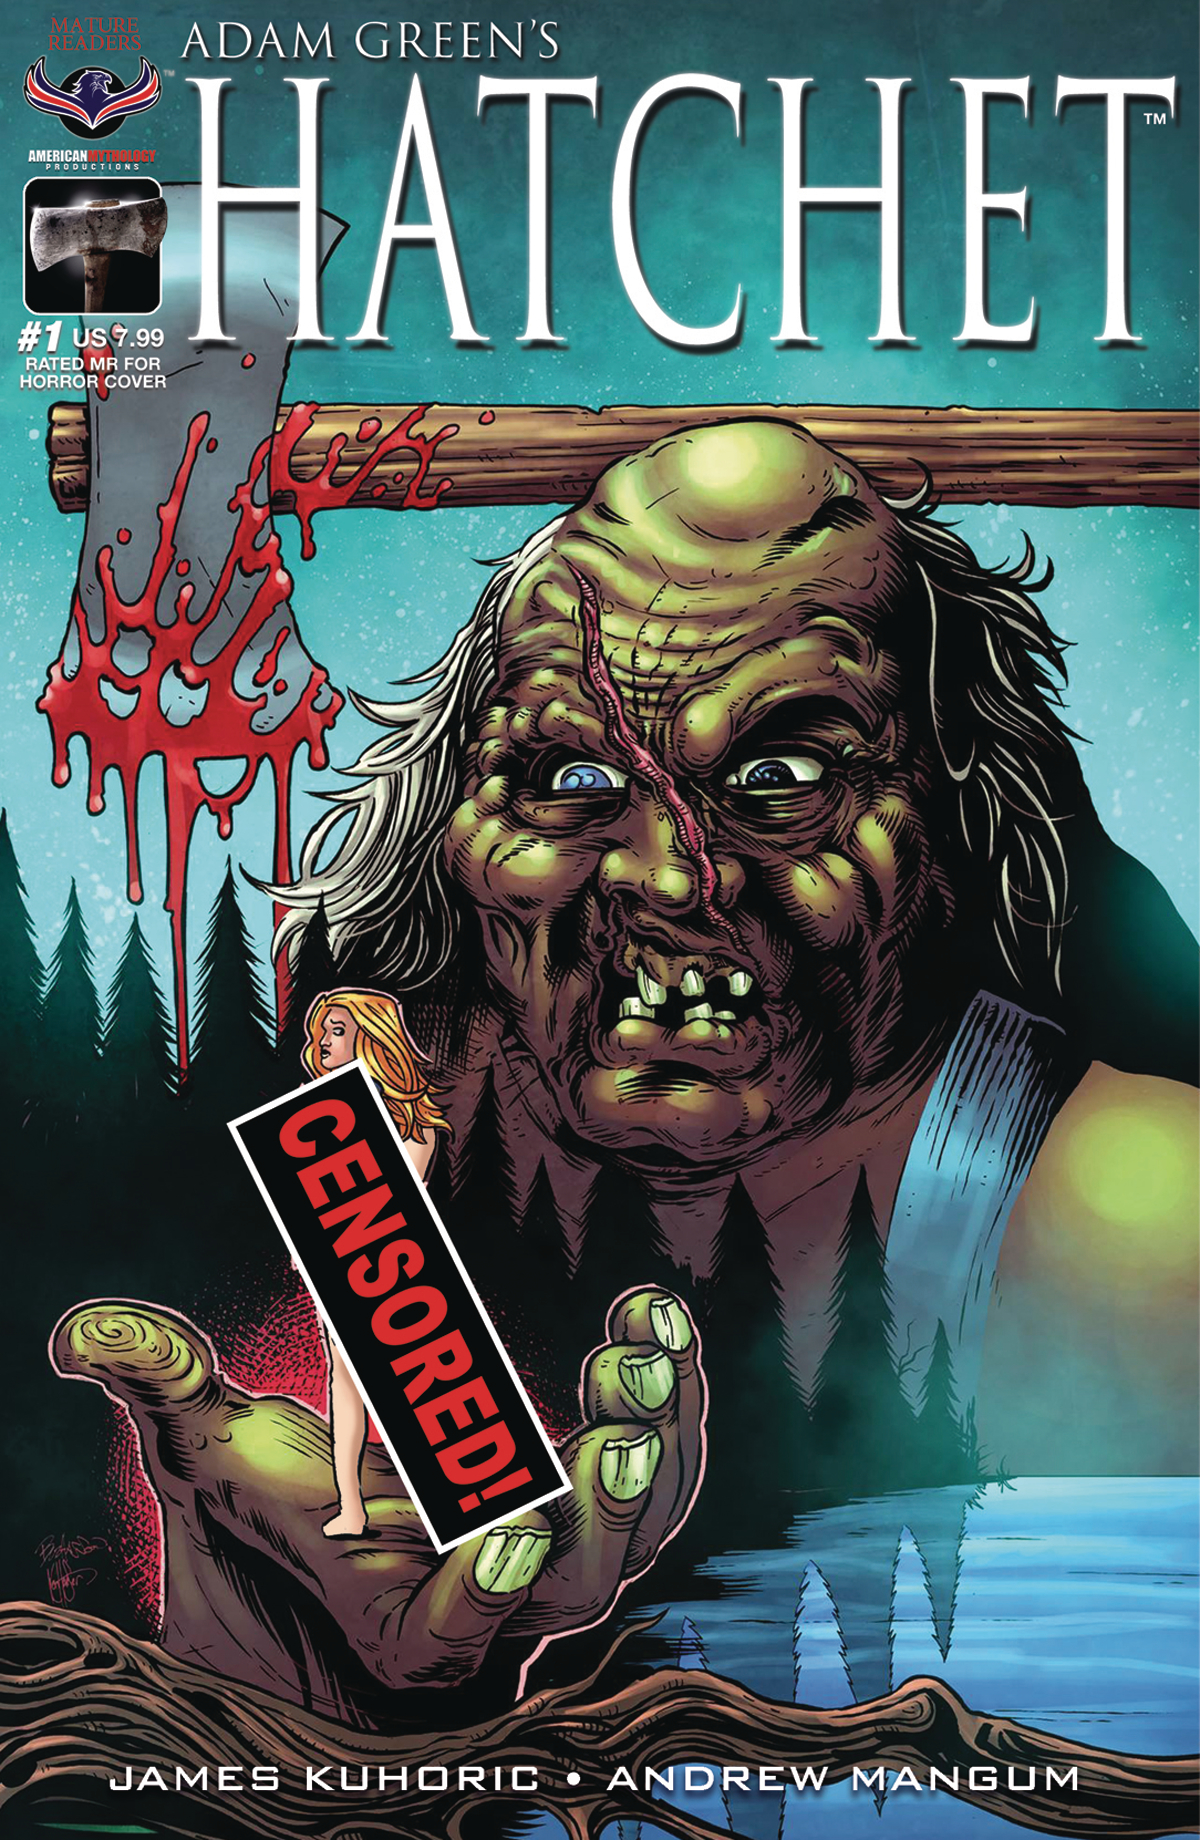 HATCHET #1 RATED MR FOR HORROR LTD ED CVR (O/A) (MR)